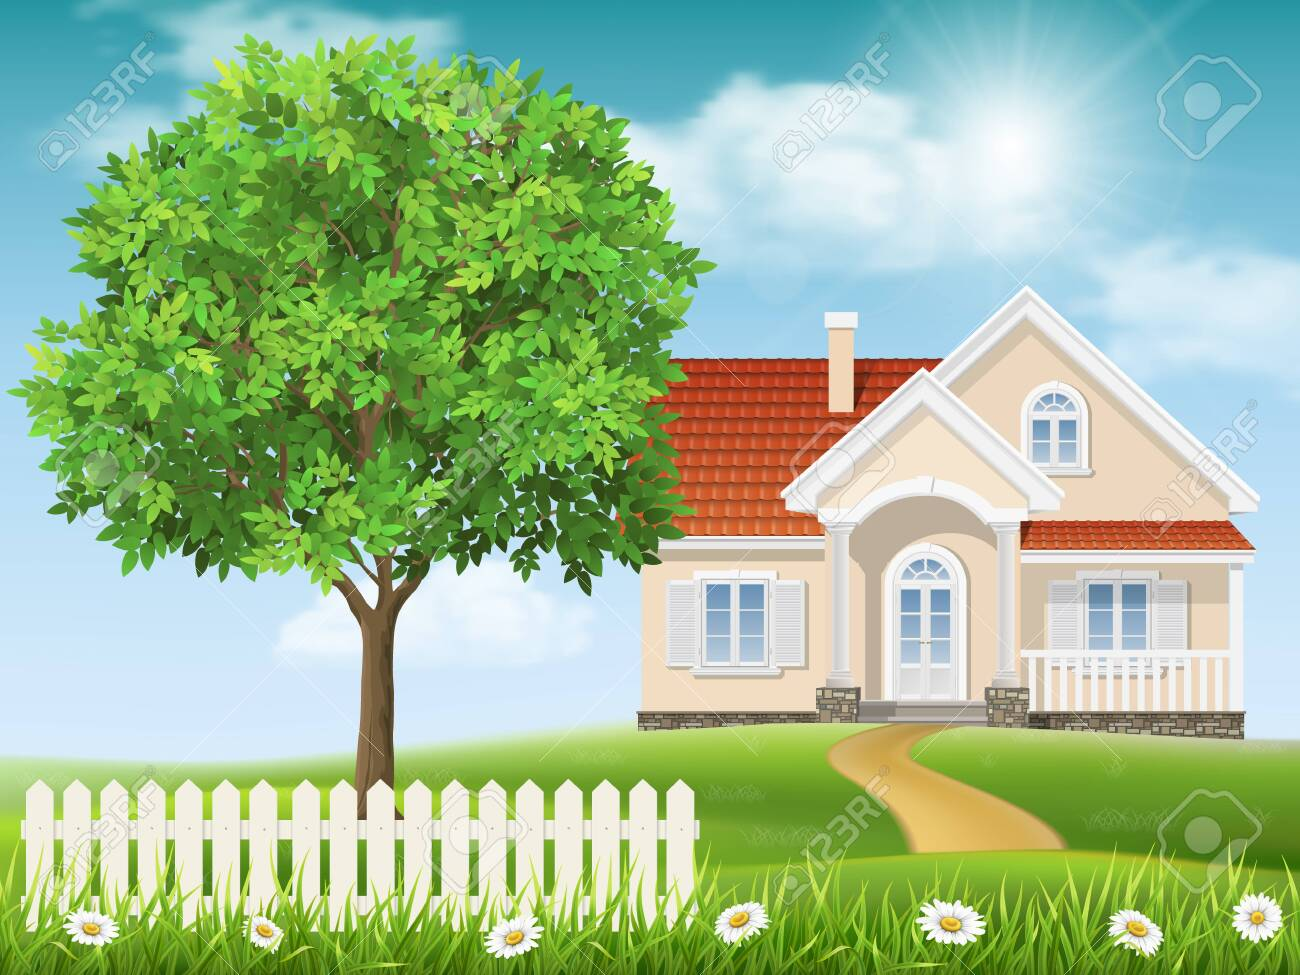 House On A Hill And Tree Spring Country Landscape Grass And Royalty Free Cliparts Vectors And Stock Illustration Image 116464468